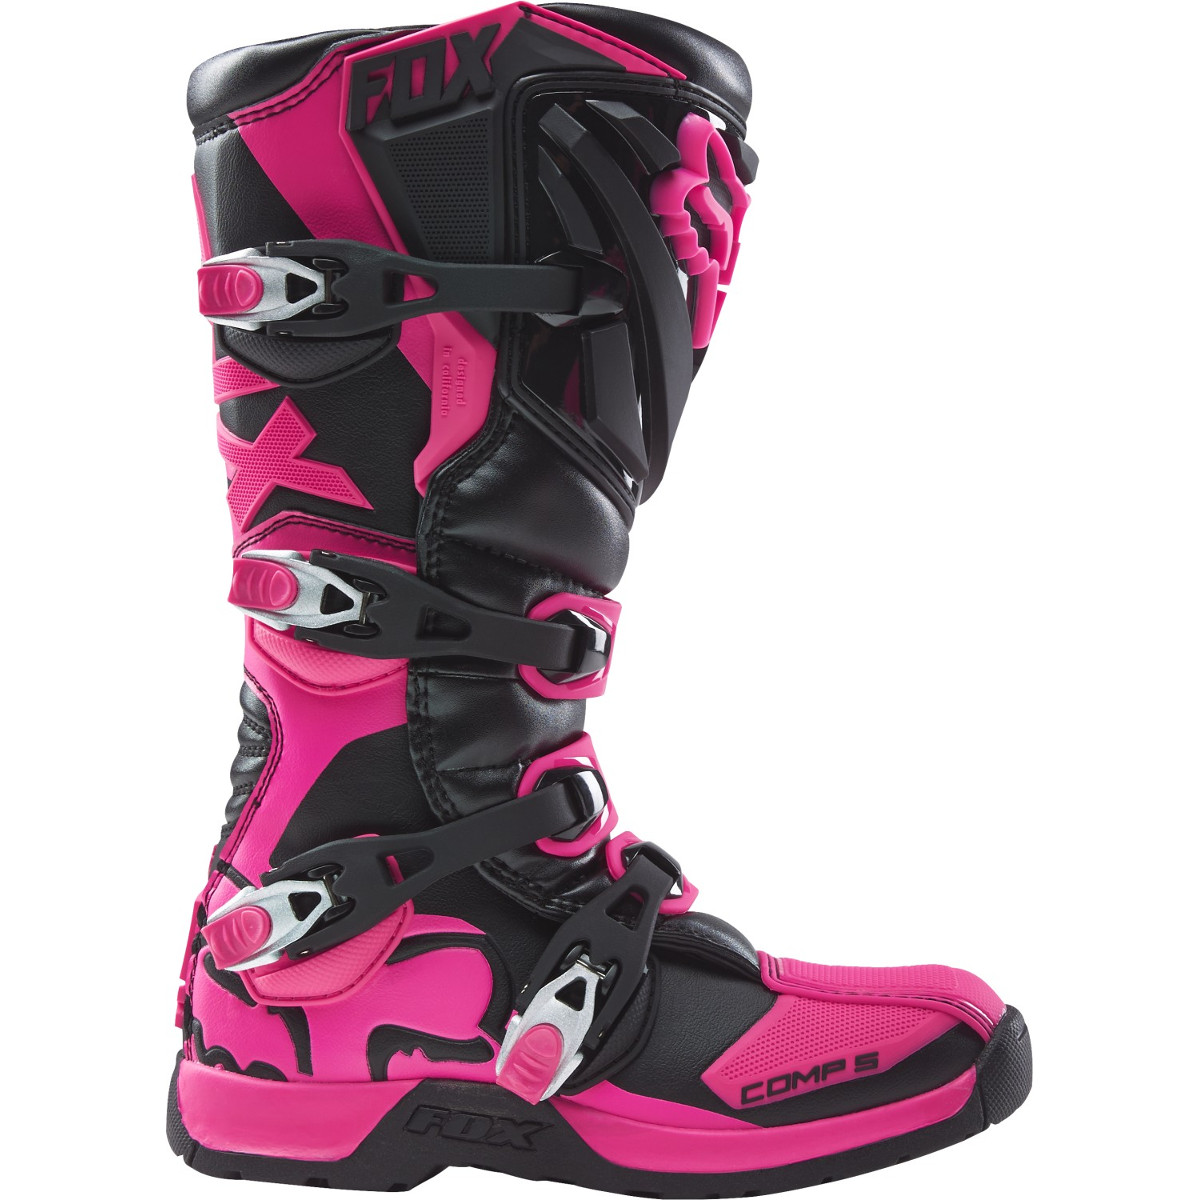 fox girls motocross stiefel comp 5 schwarz pink 2019 maciag offroad. Black Bedroom Furniture Sets. Home Design Ideas